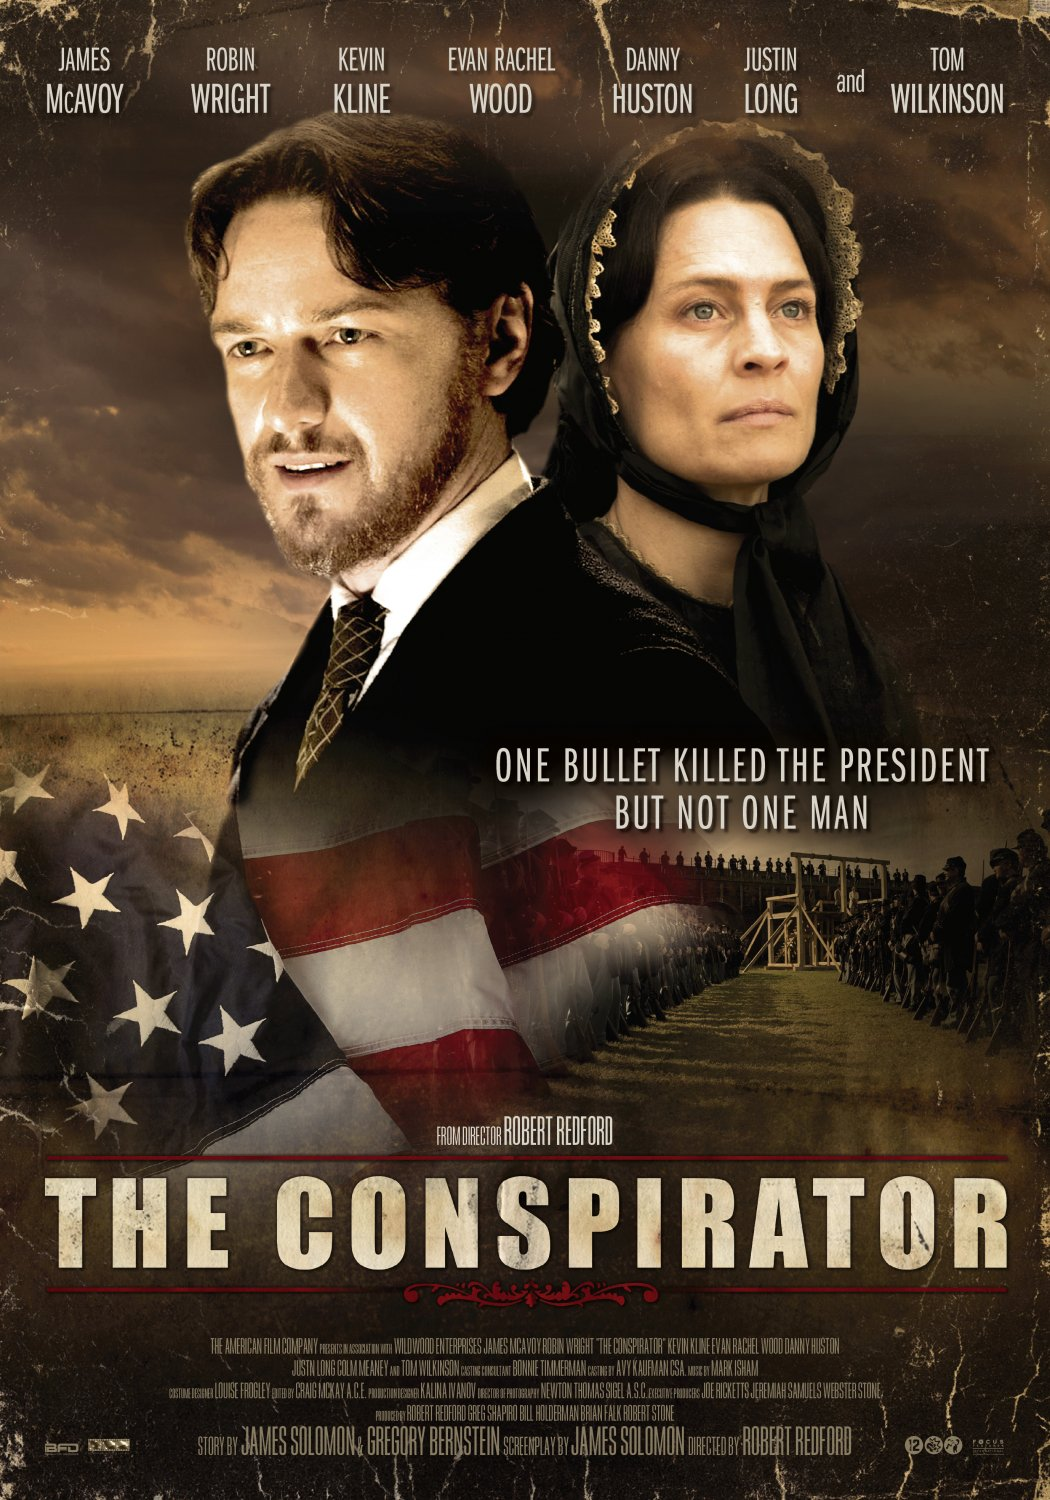 the conspirator Get information and buy cheap theatre tickets for imperium i: conspirator with london west end musical discount tickets for london shows and attractions, presented by london west end musical.